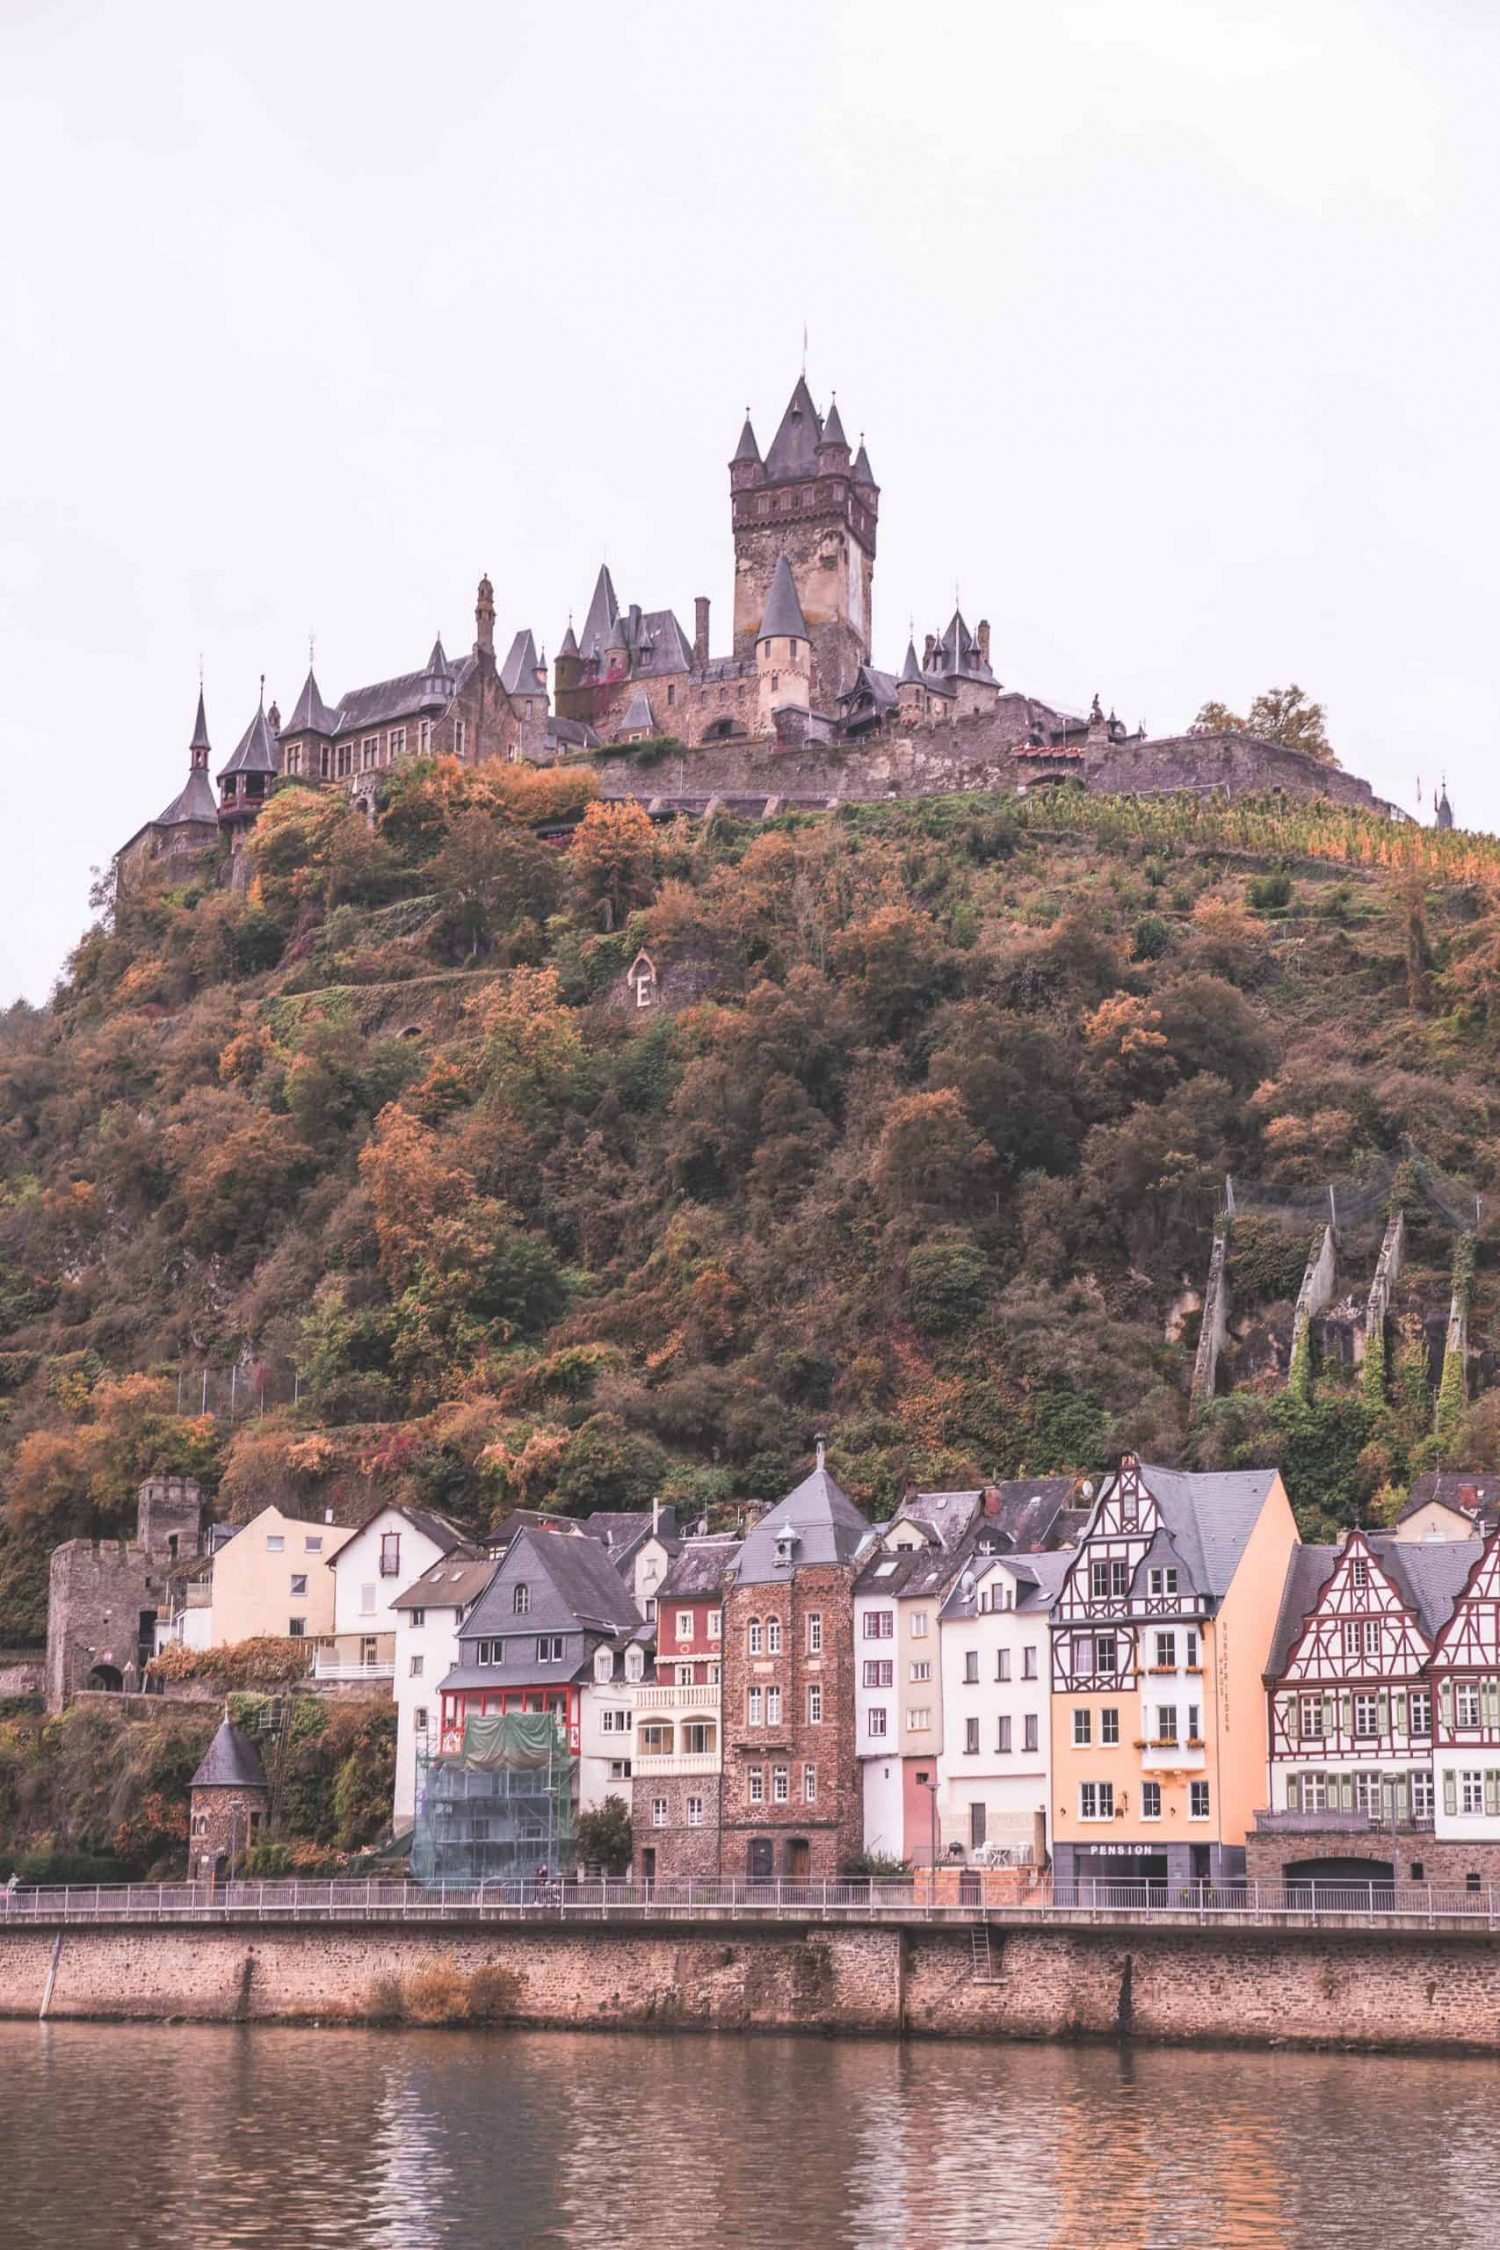 Cochem Castle in Germany in the fall! Cochem Castle is a great destination to visit in 2020, and one of my favorites from 2019.